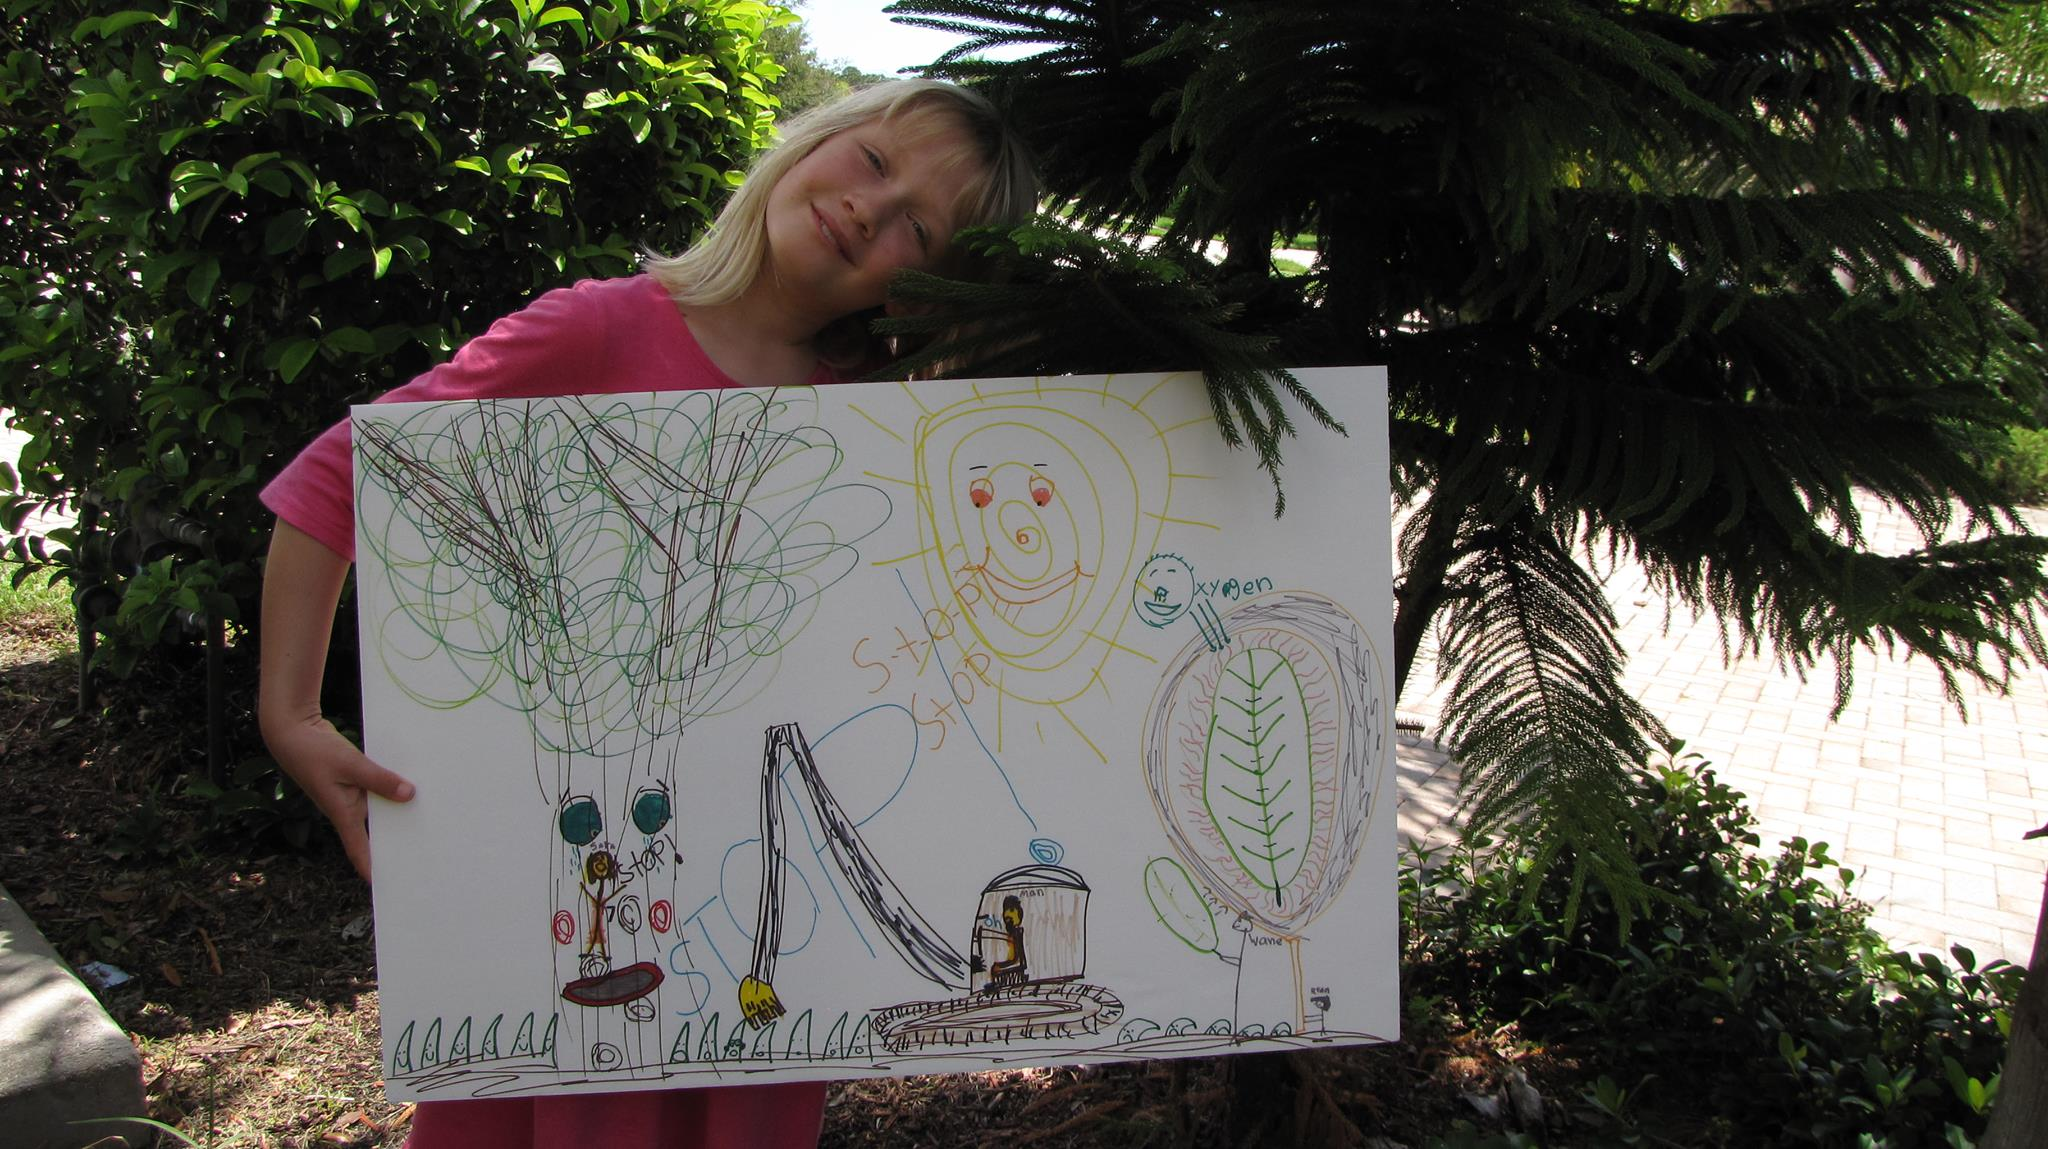 Sara's Poster Description: I am climbing a tree in the park and telling a man in a excavator to stop taking down trees. The sun is also telling him to stop. A close view of a leaf (right side) shows how the oxygen we need is being produced.